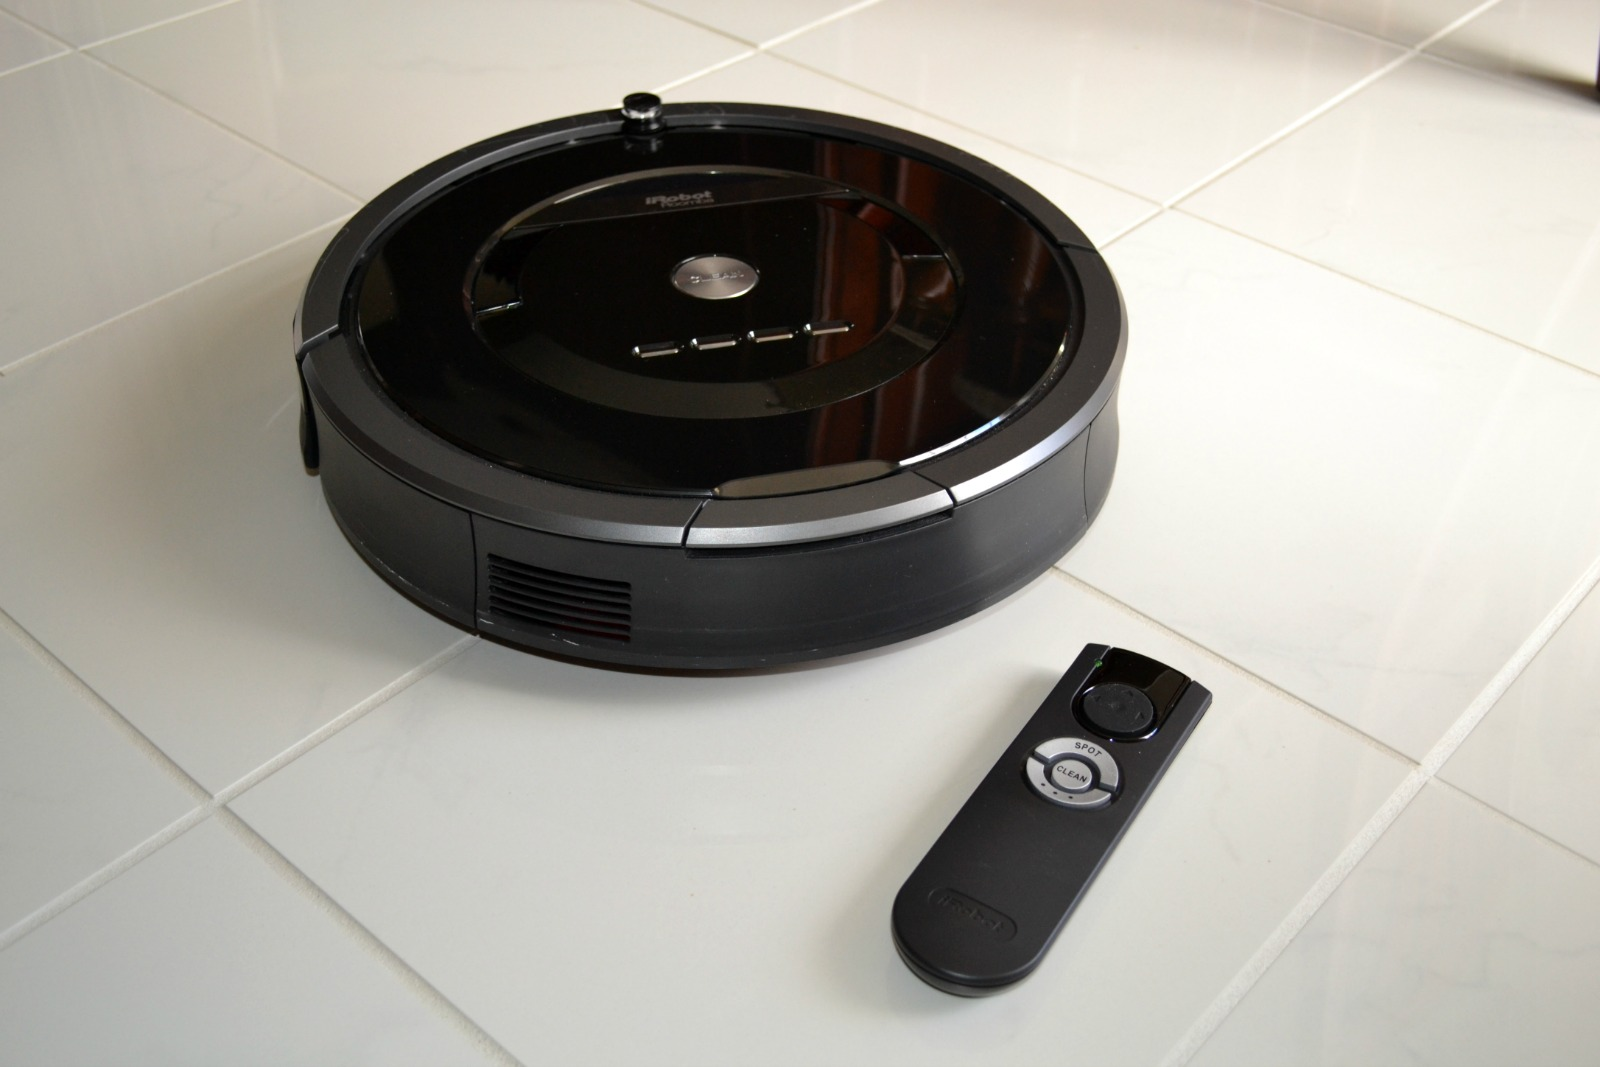 roomba, irobot, sweeper, remote